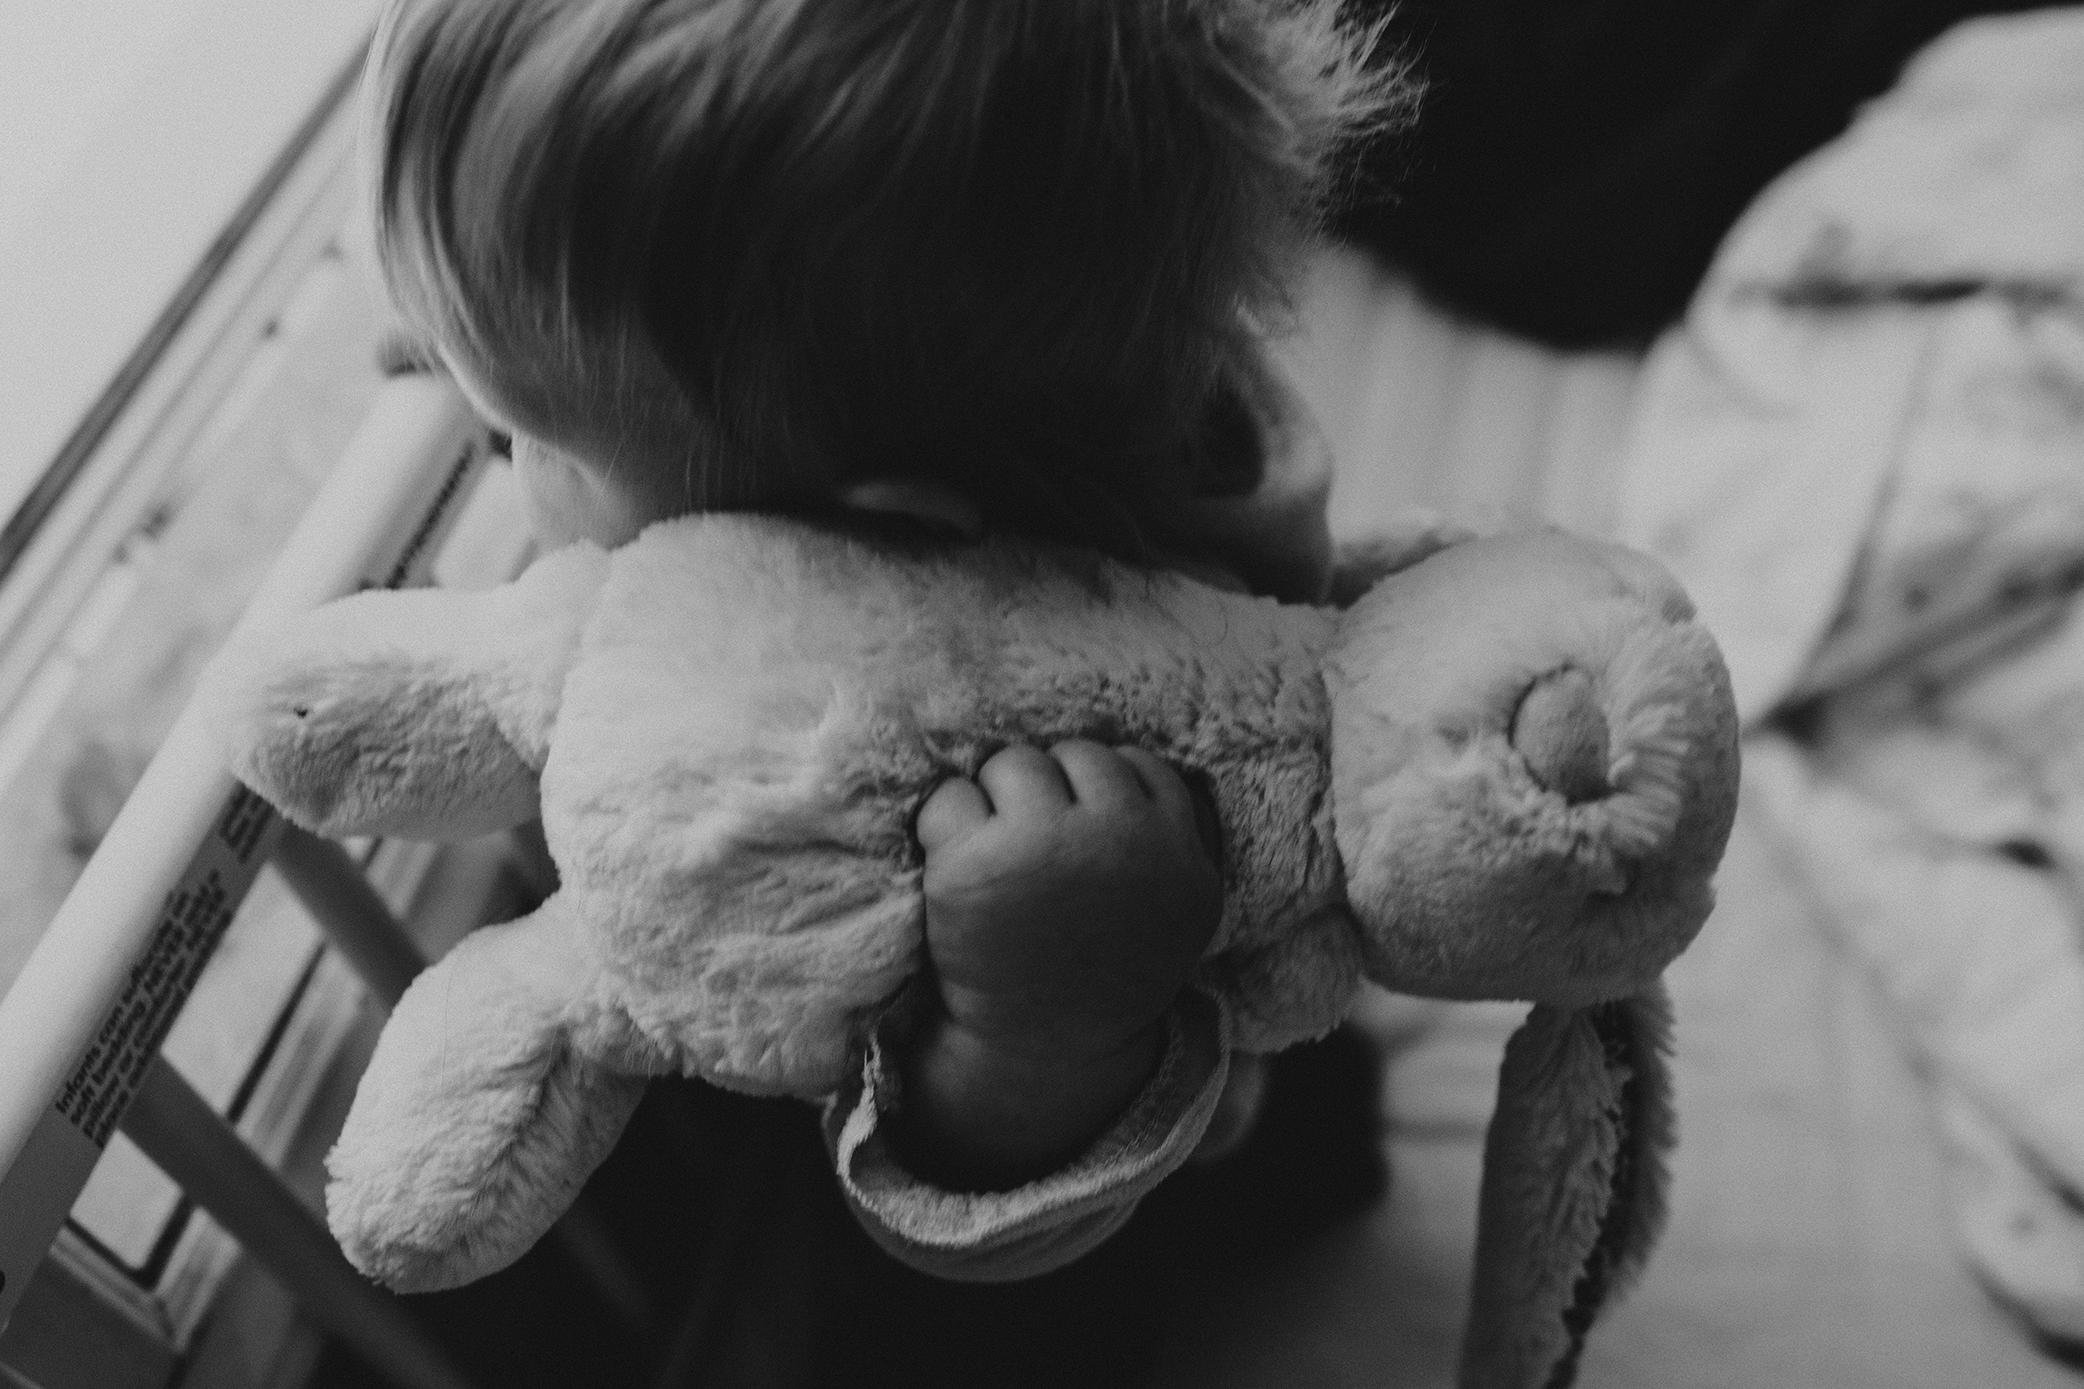 9. 365 - The way she holds her bunny to her ear and leans her cheek in to it's fur pulls my heartstrings.